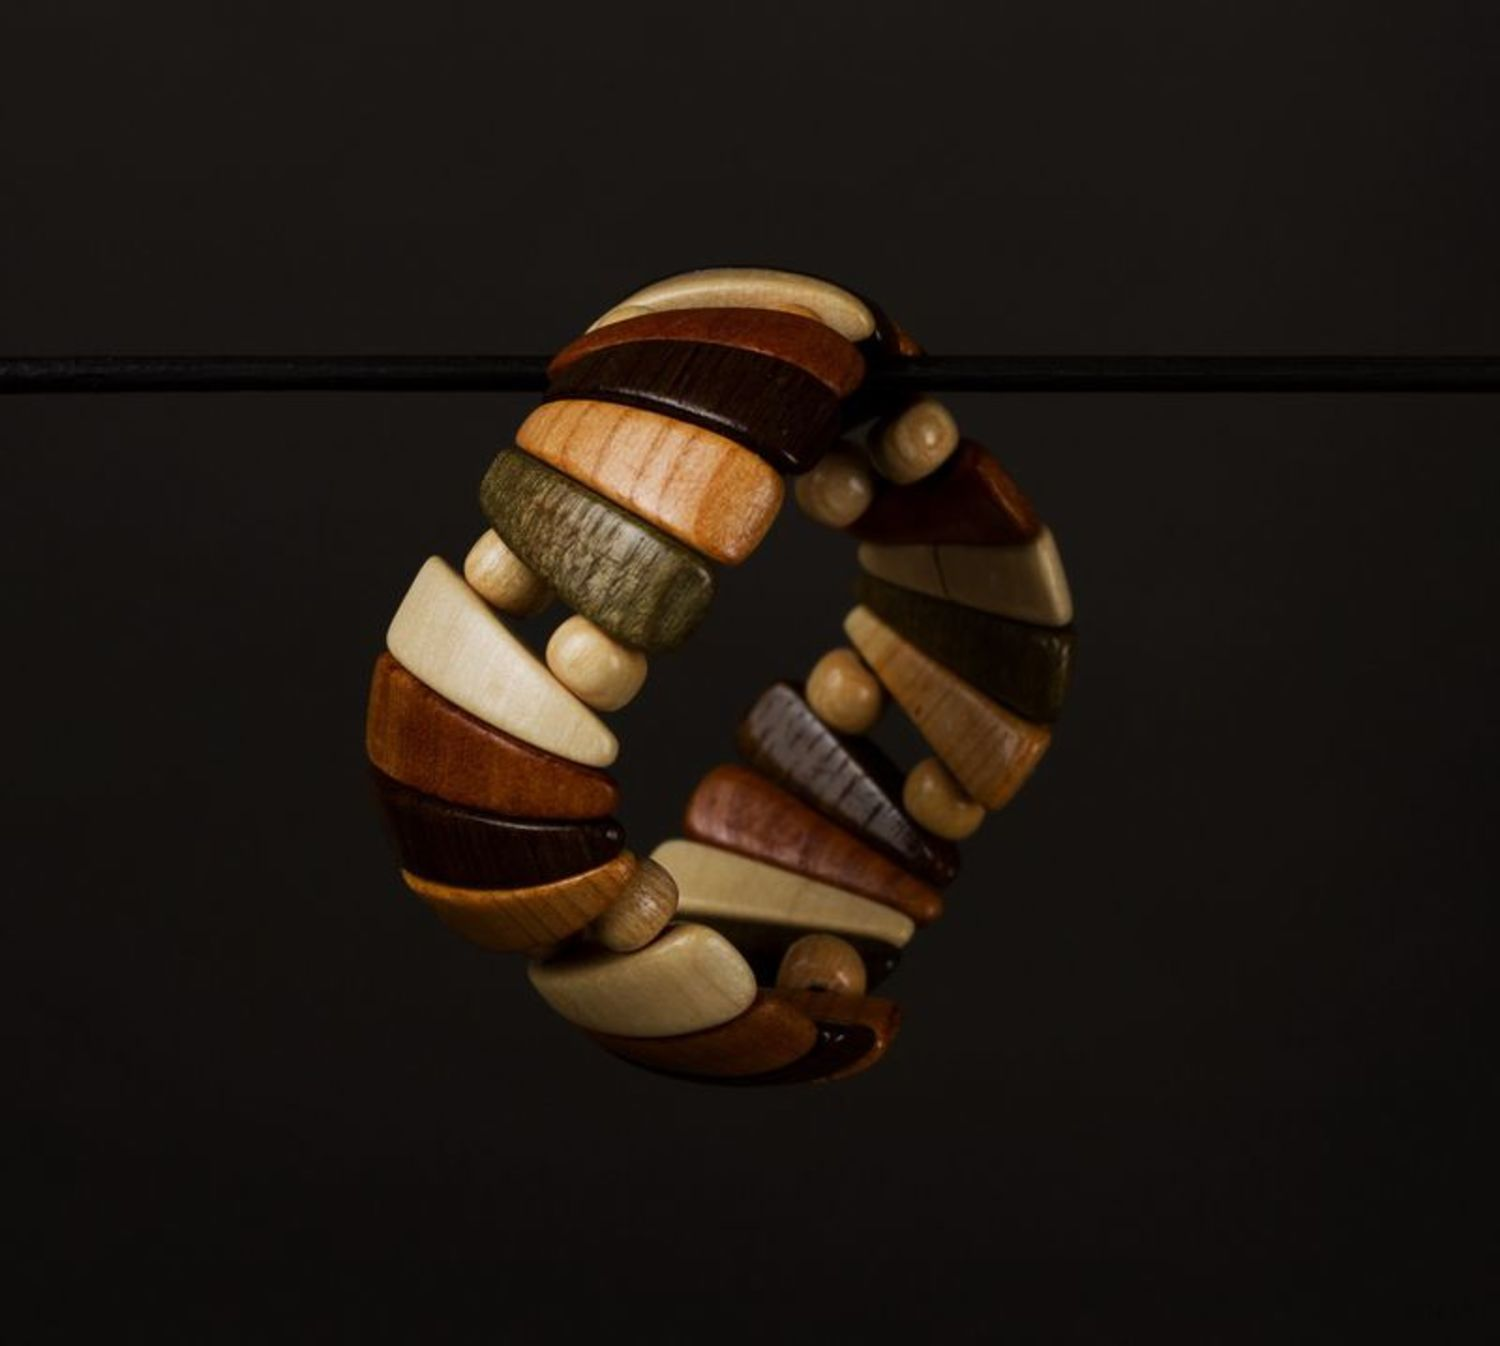 Wrist bracelet made of wood photo 1